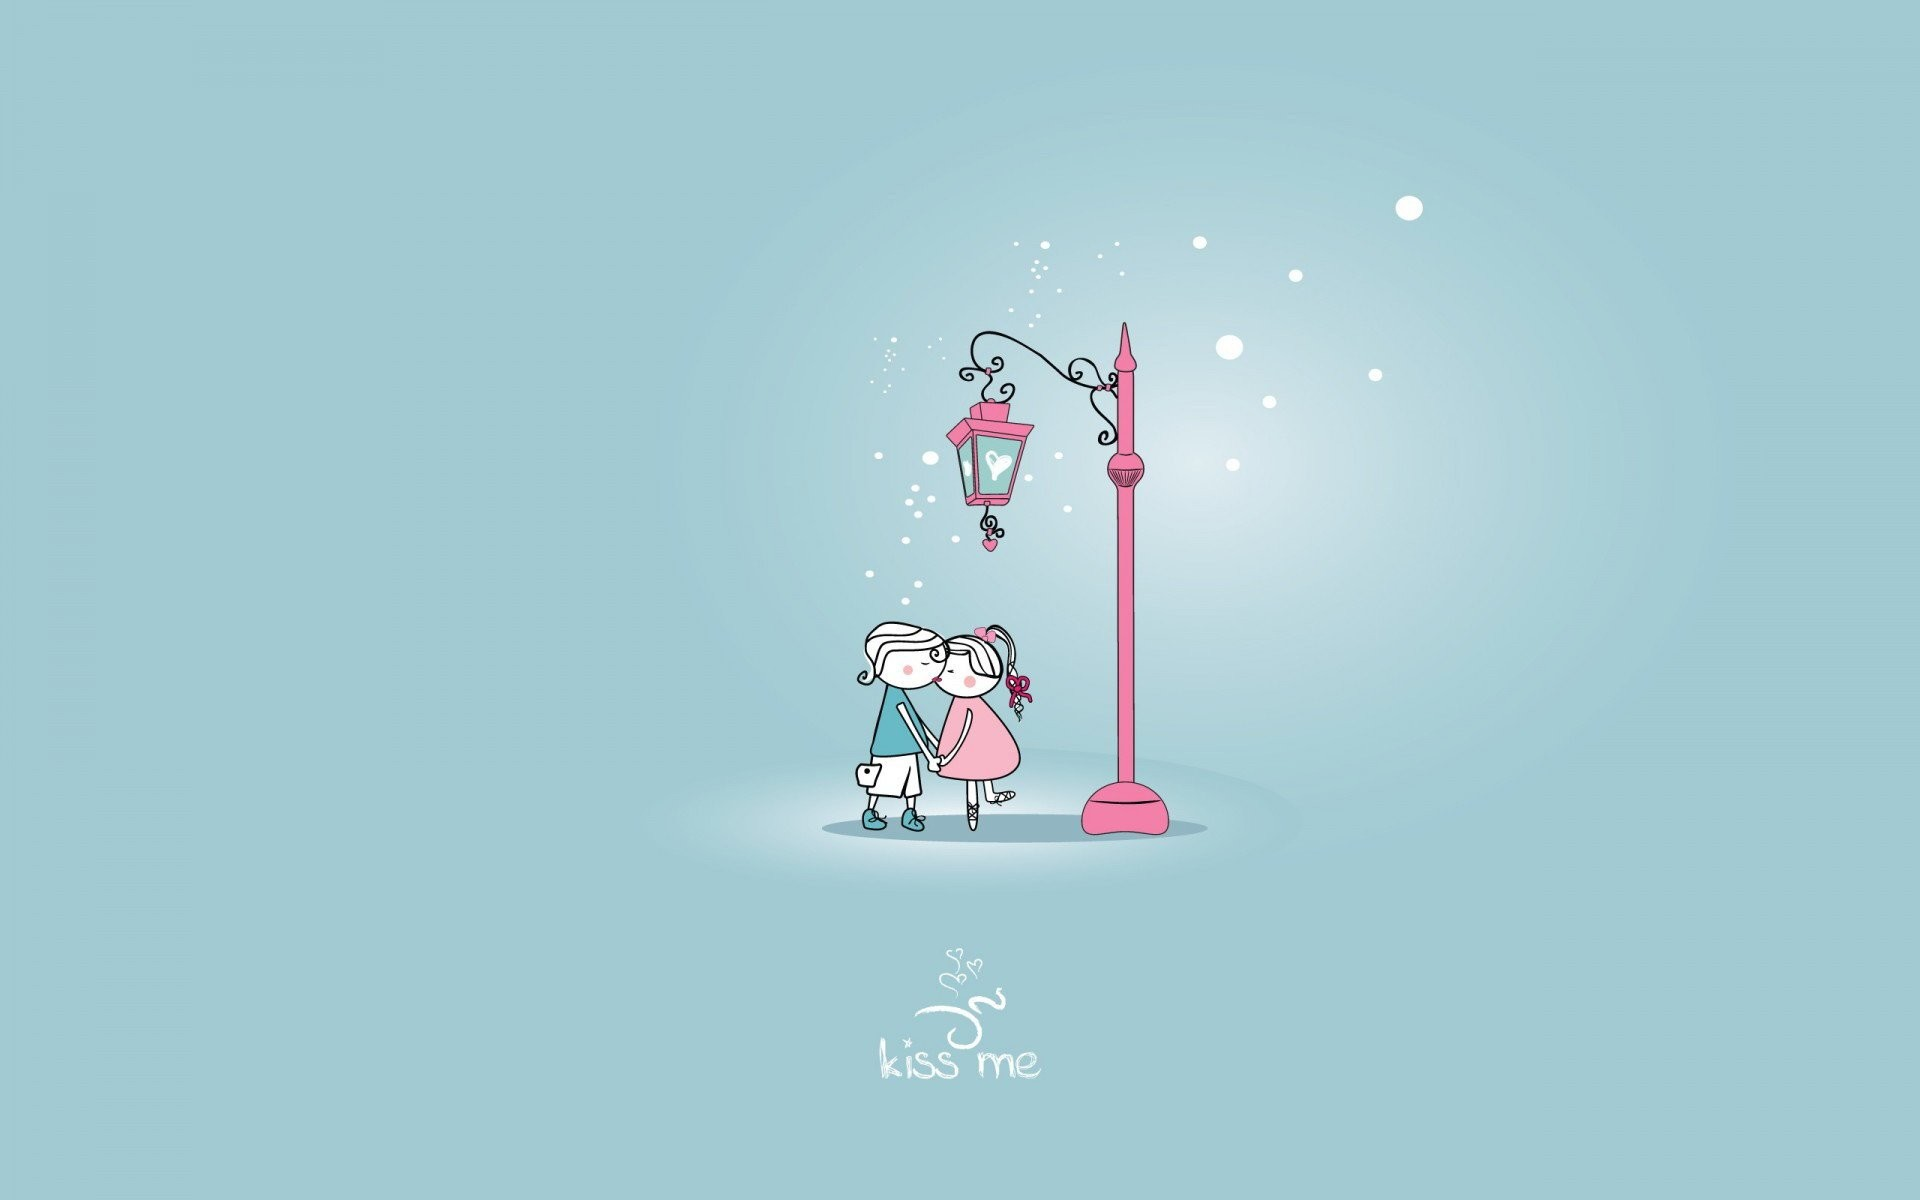 Best Wallpaper Love Aesthetic - 1202413-download-free-cute-love-background-1920x1200  Perfect Image Reference_41774.jpg